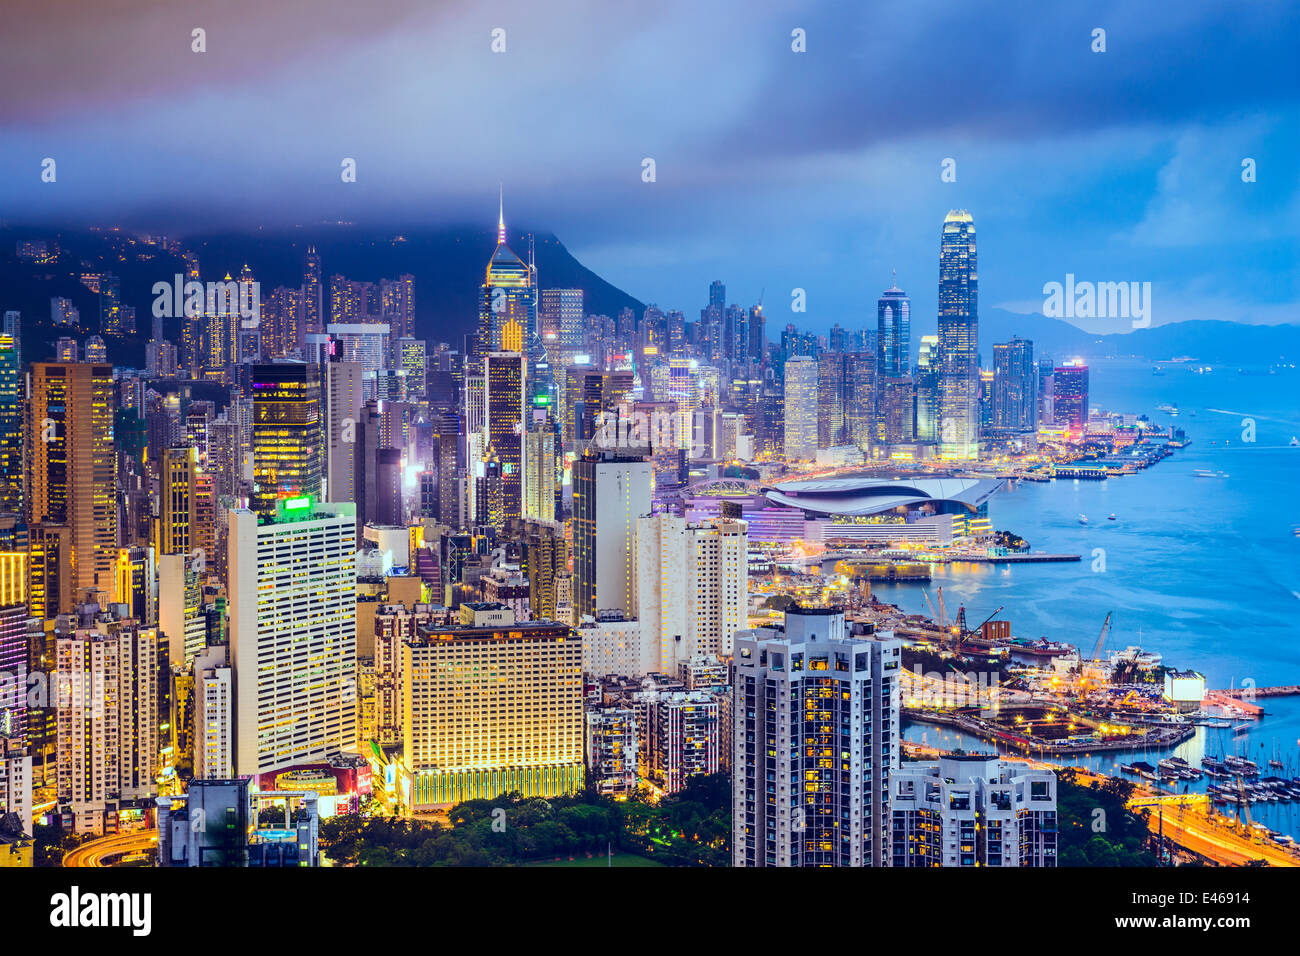 Hong Kong, Chine City Skyline Photo Stock